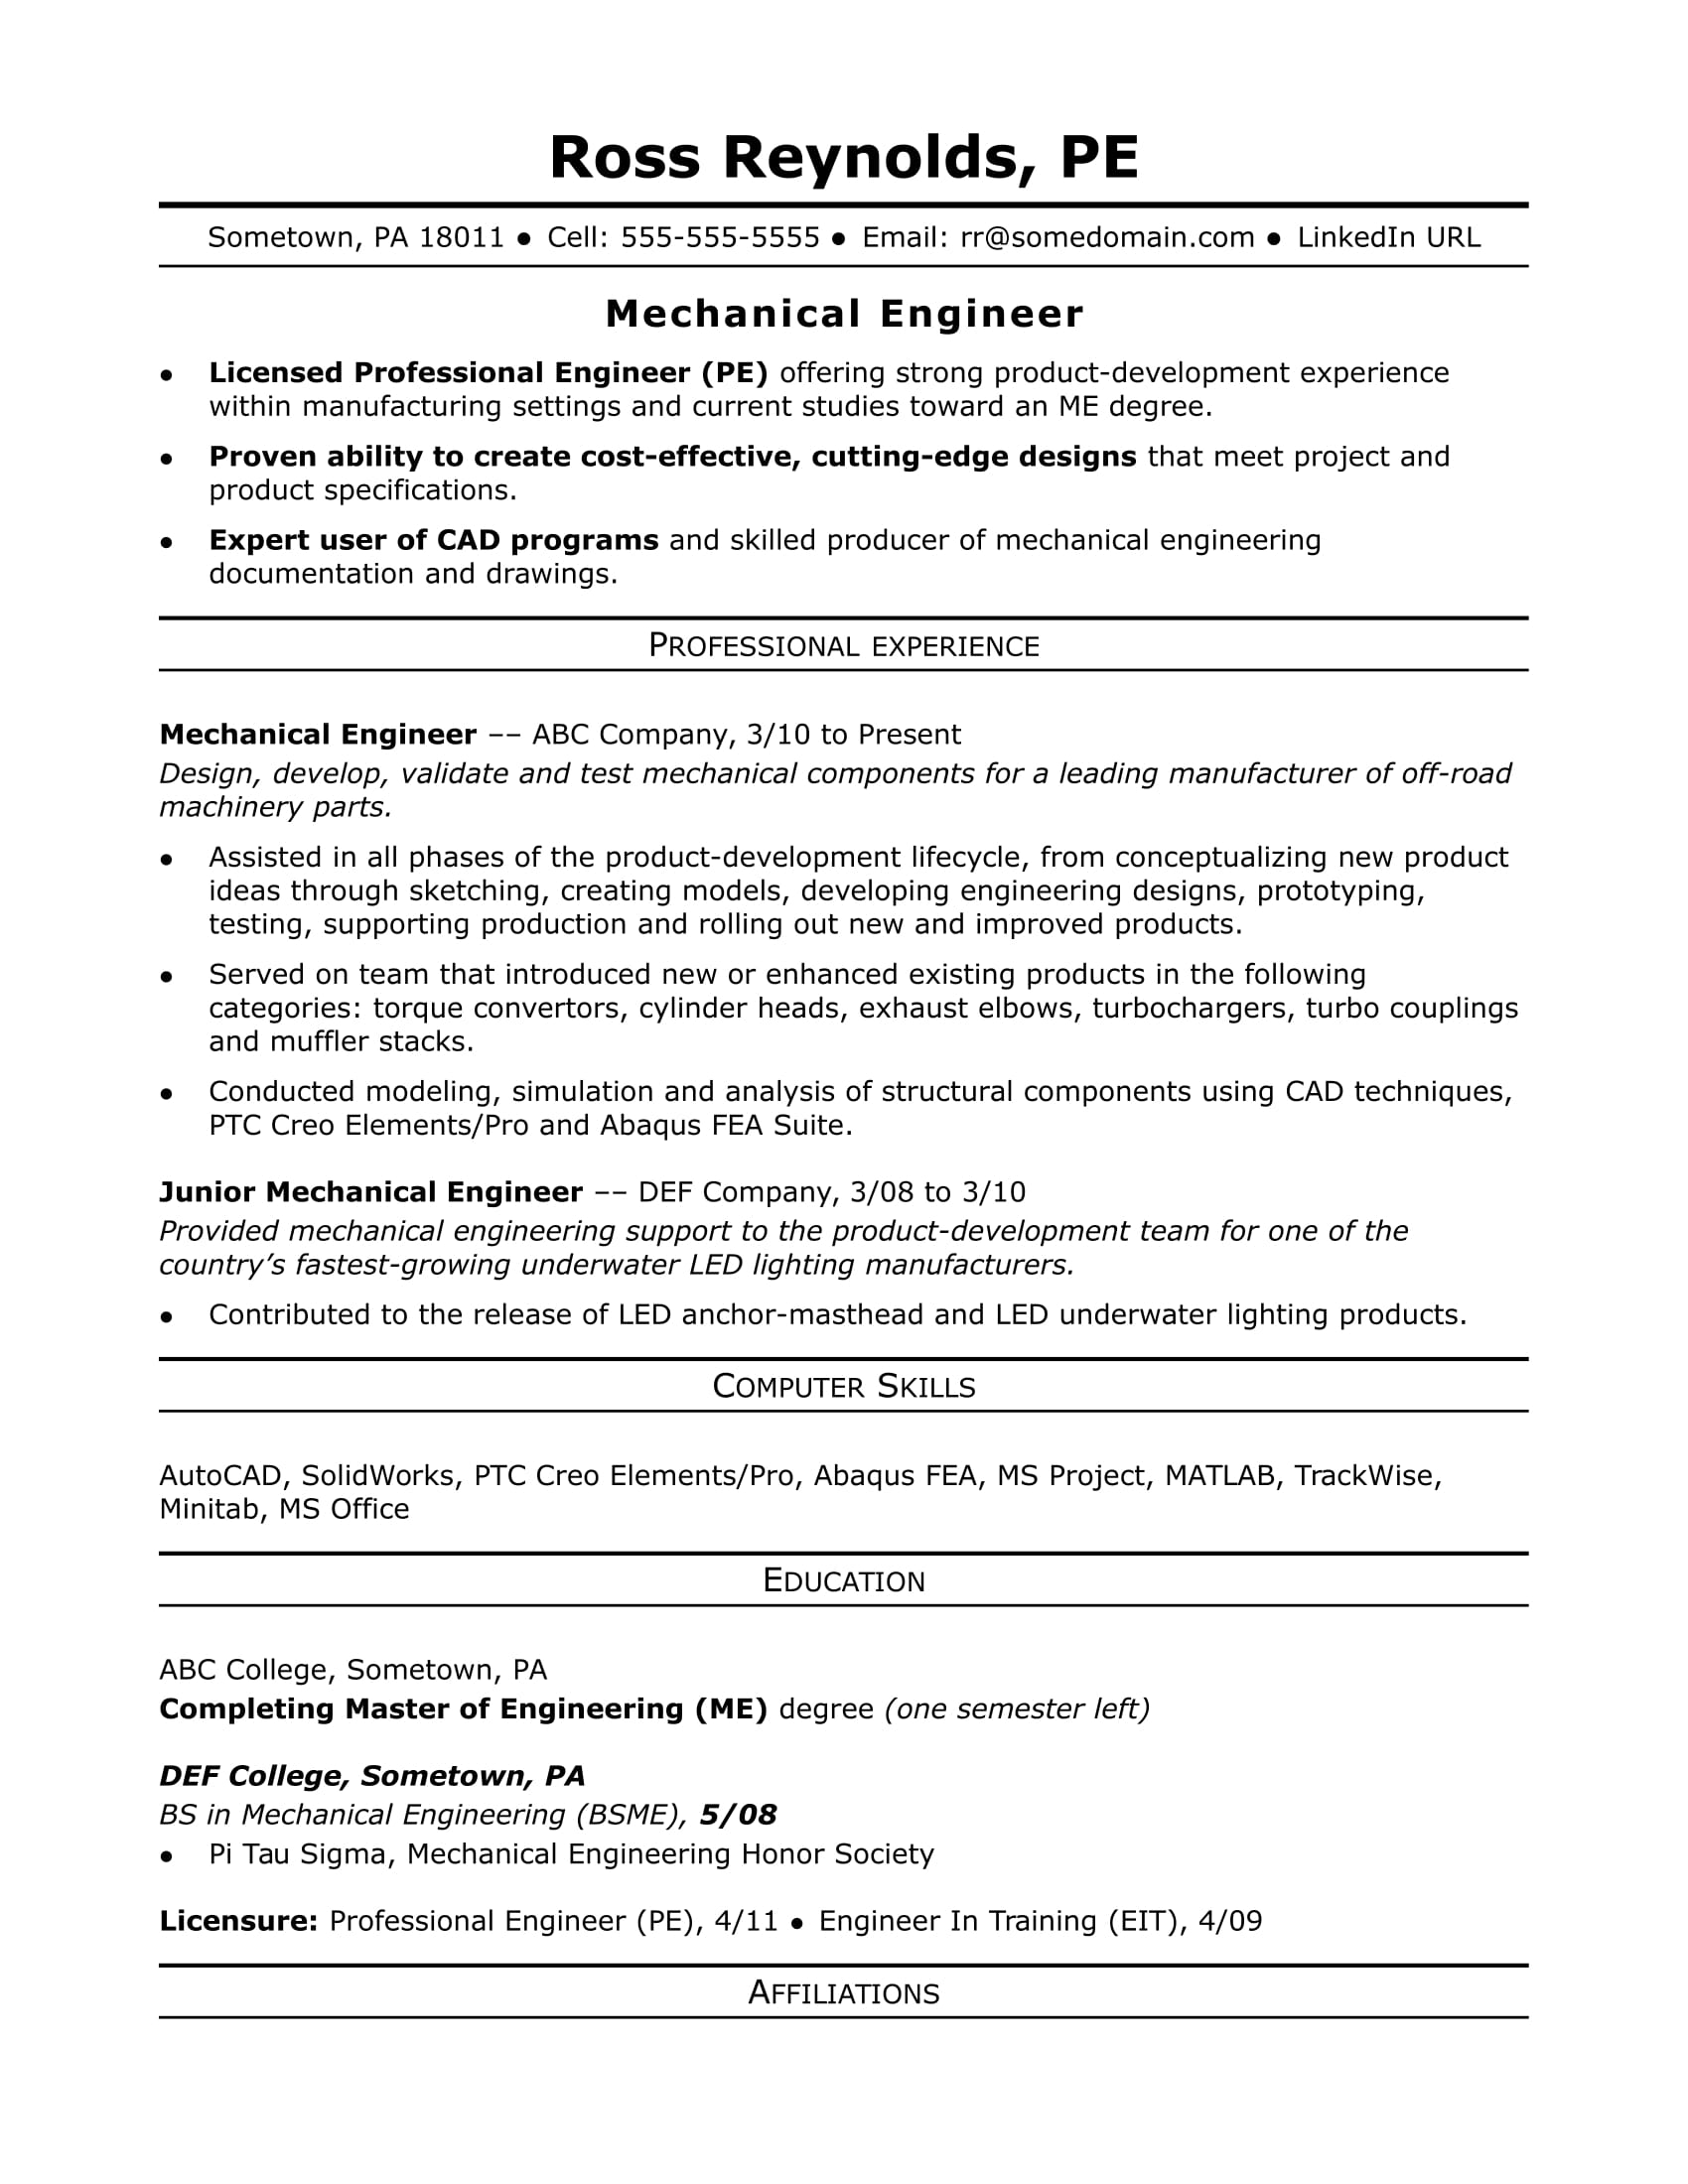 sample resume for a midlevel mechanical engineer - Mechanical Engineering Resume